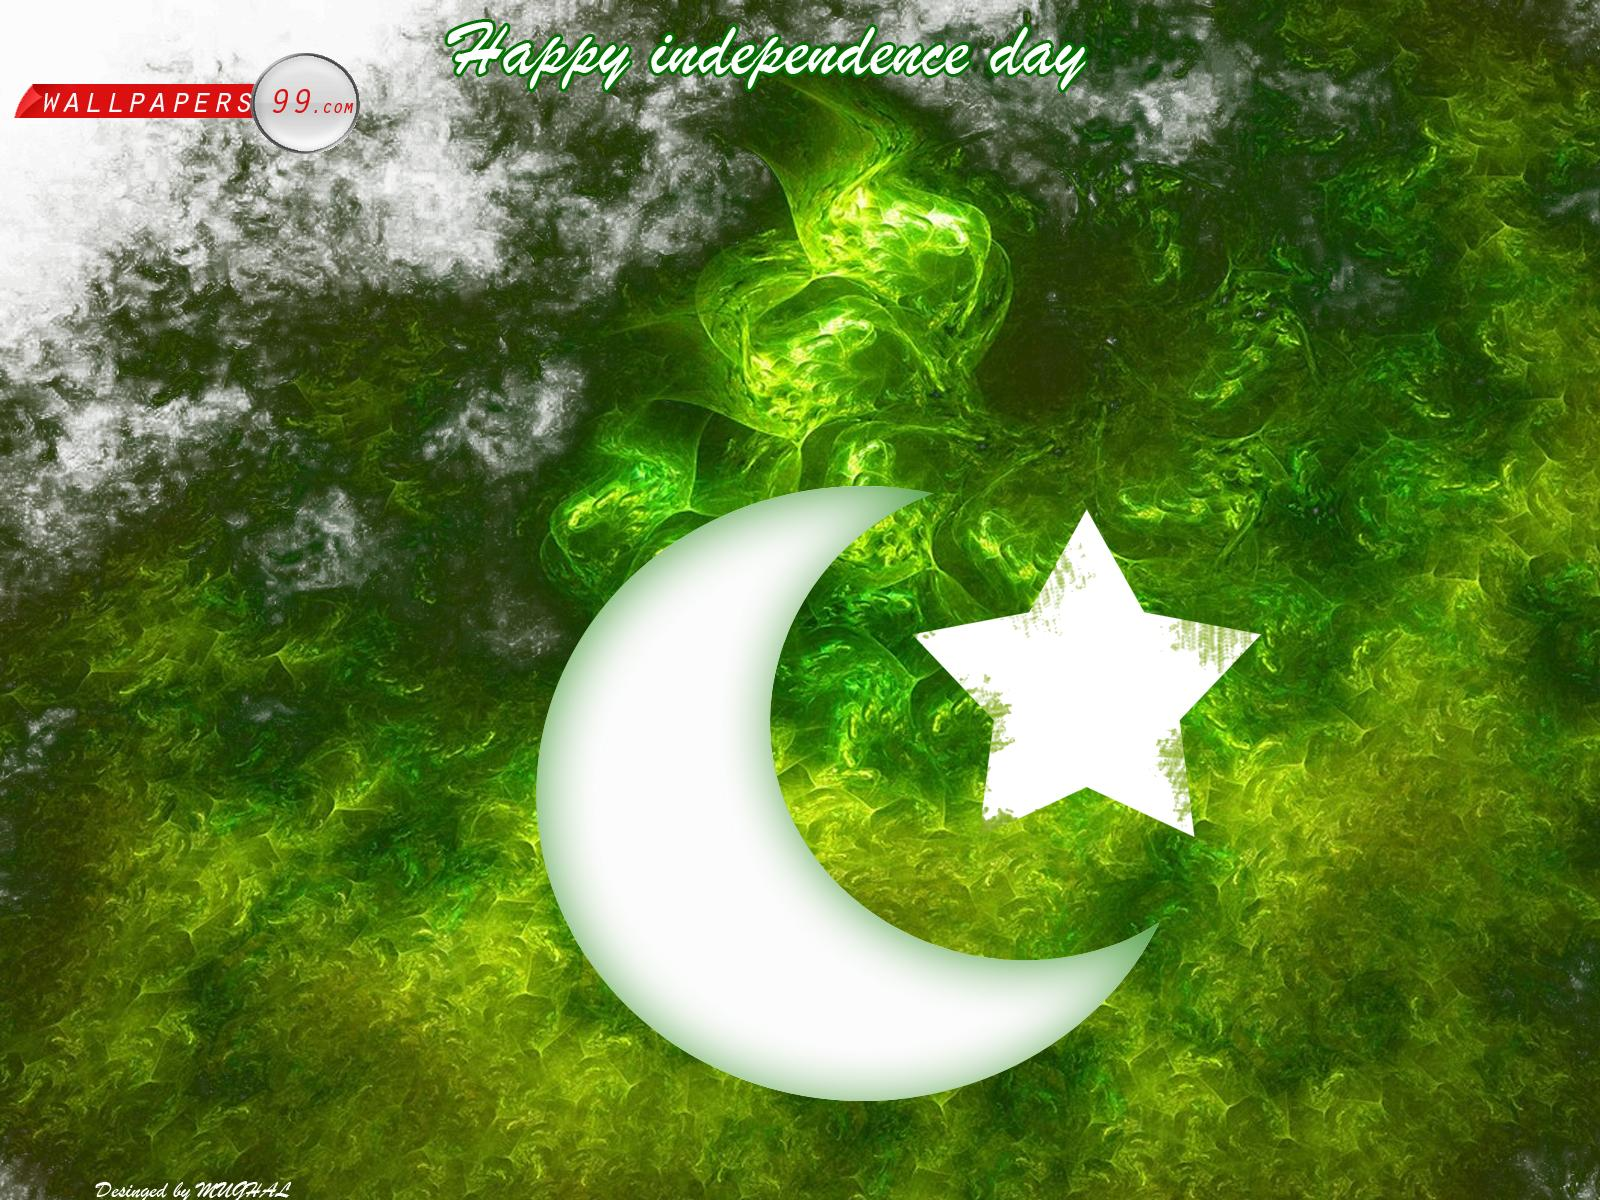 http://1.bp.blogspot.com/-pCV9KFbZhCY/TjTxpDGiZOI/AAAAAAAABaI/QMjP8PnFkvA/s1600/14-August-independence-day-of-Pakistan.jpg